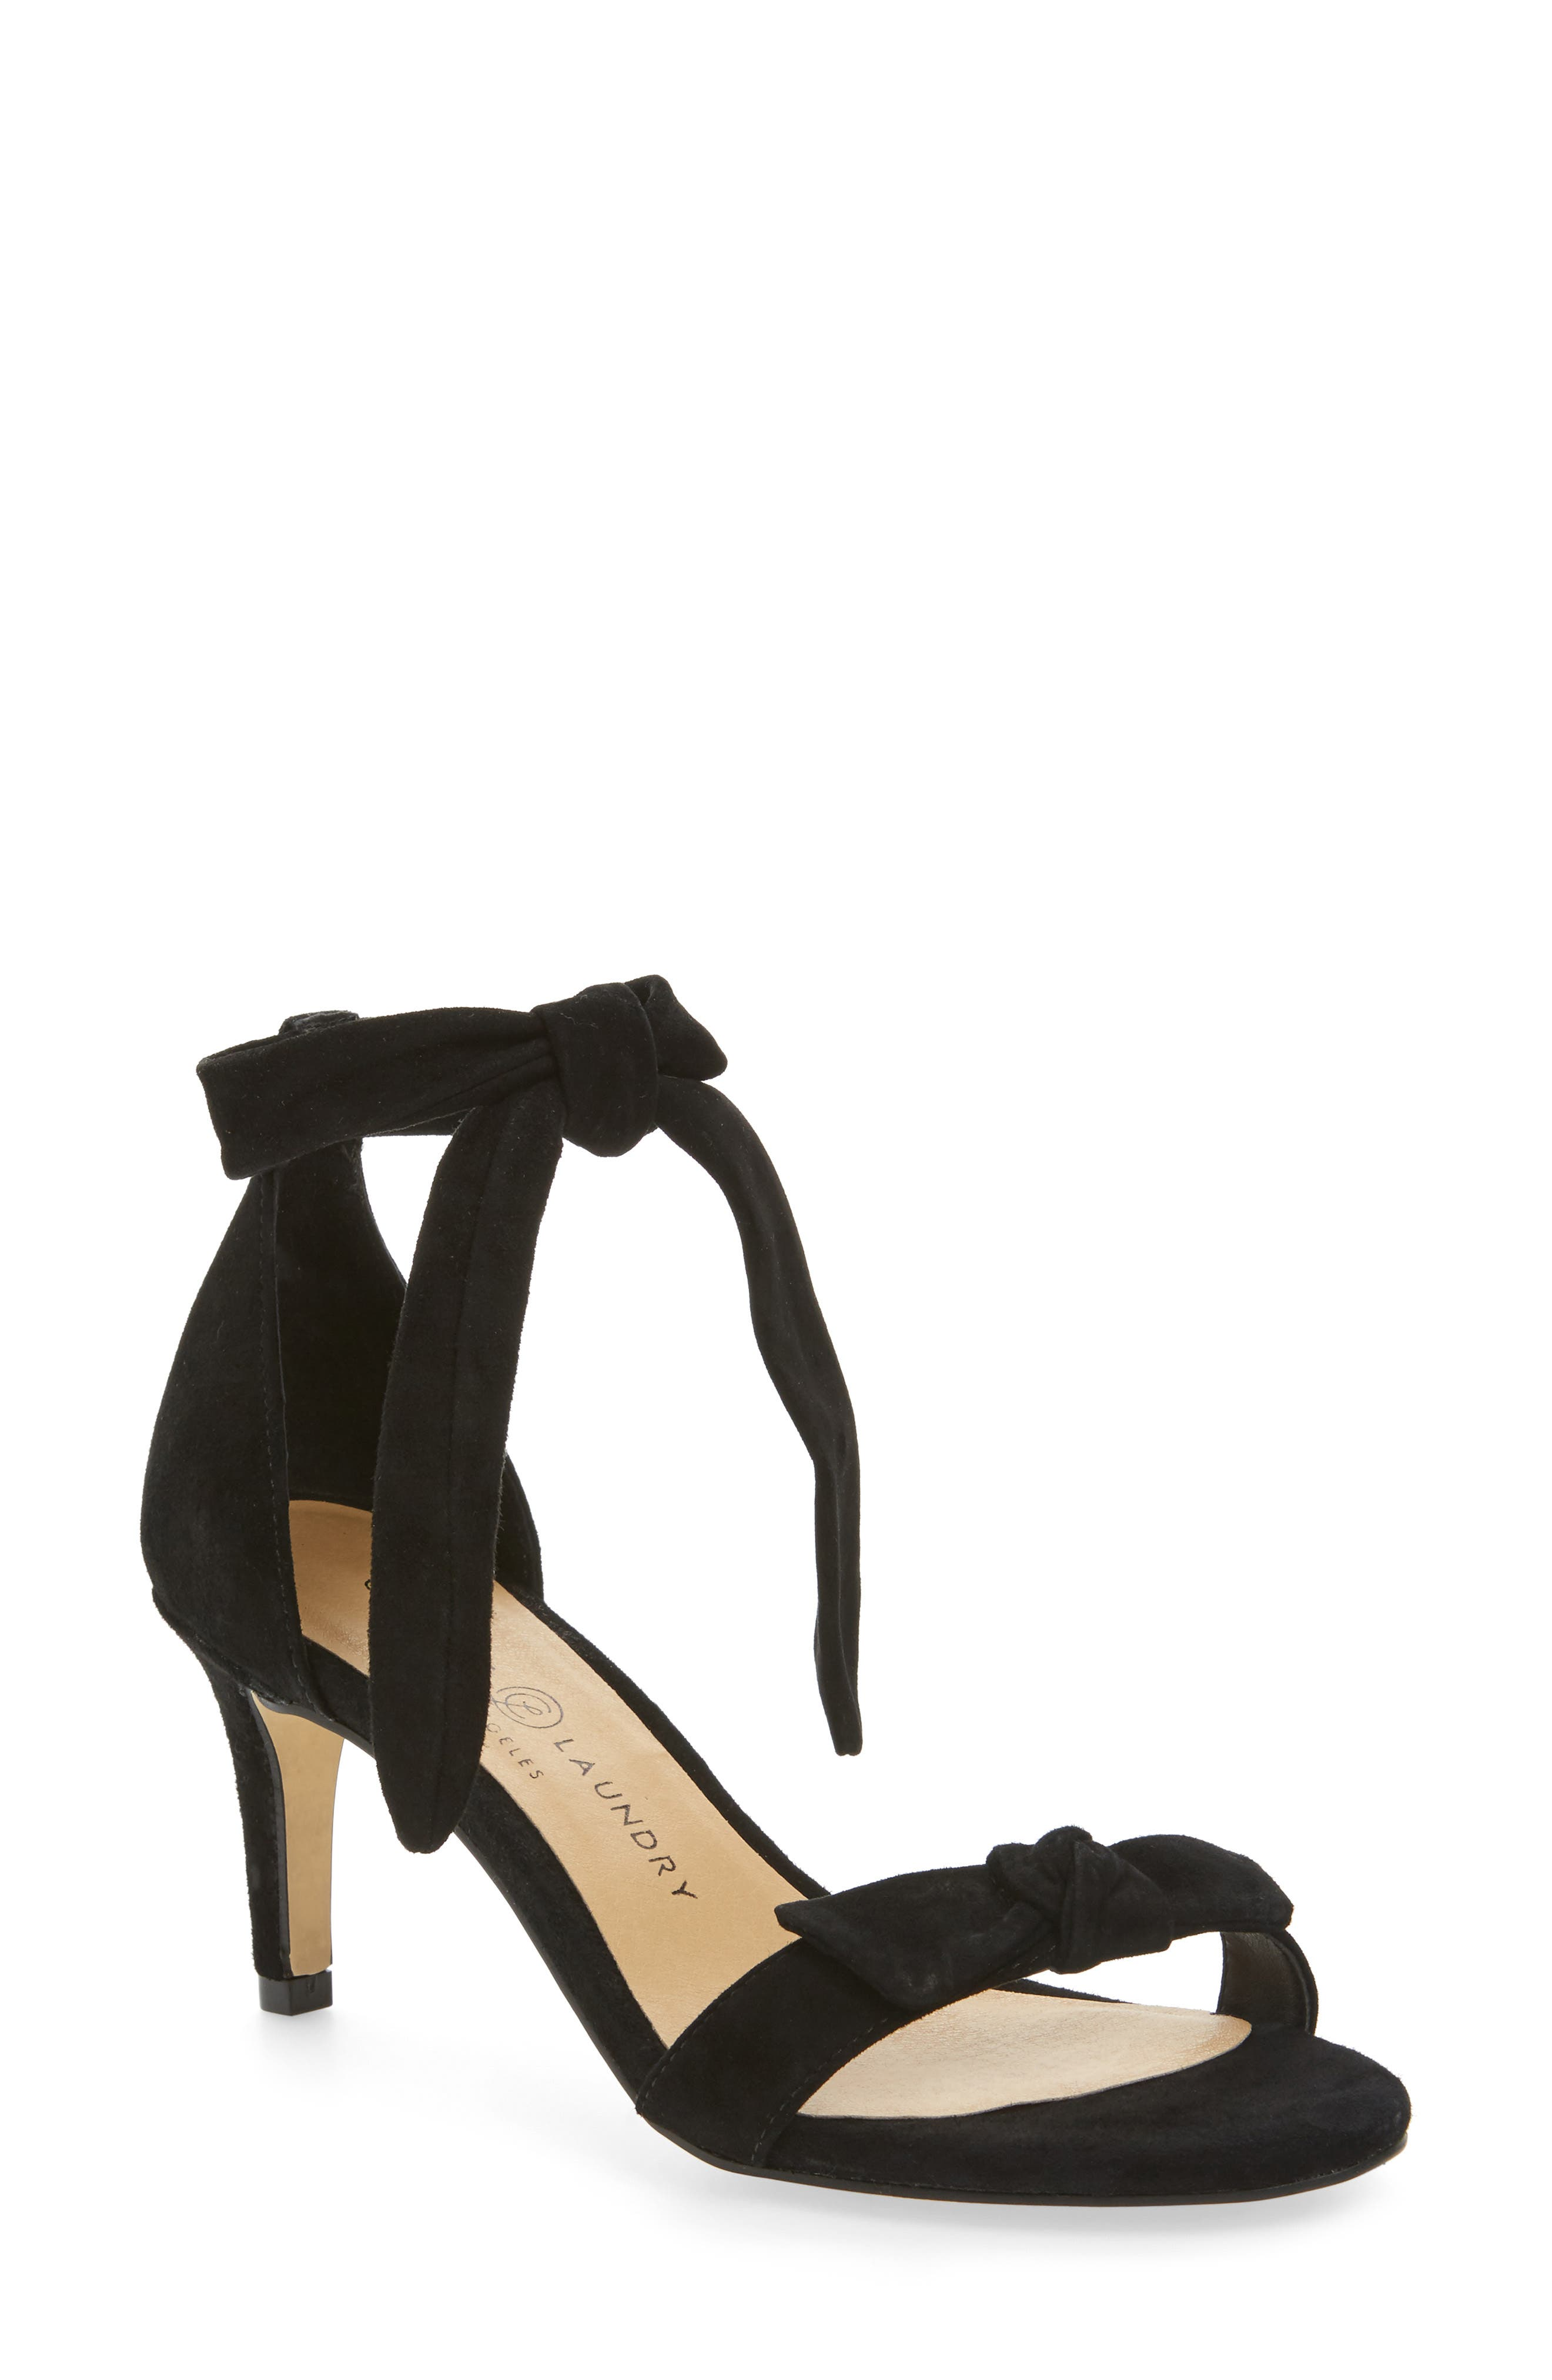 Main Image - Chinese Laundry Rhonda Ankle Tie Sandal (Women)